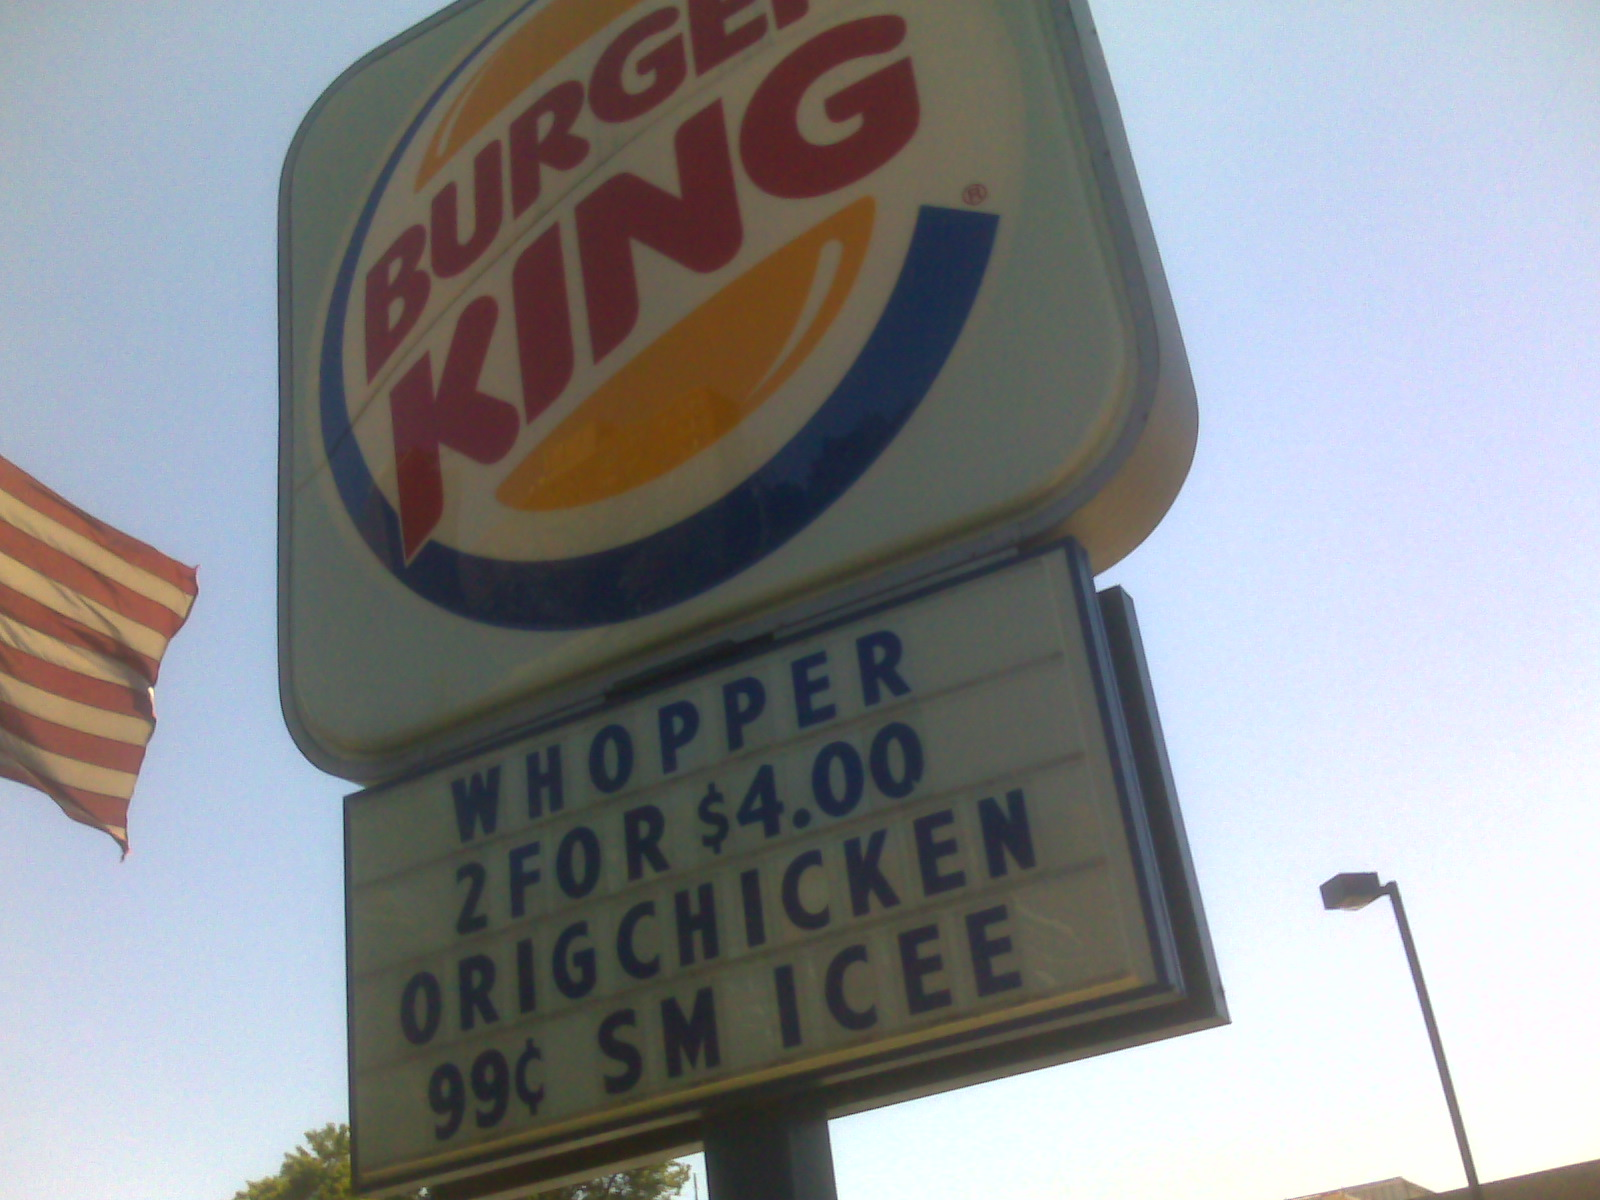 Two whoppers $4